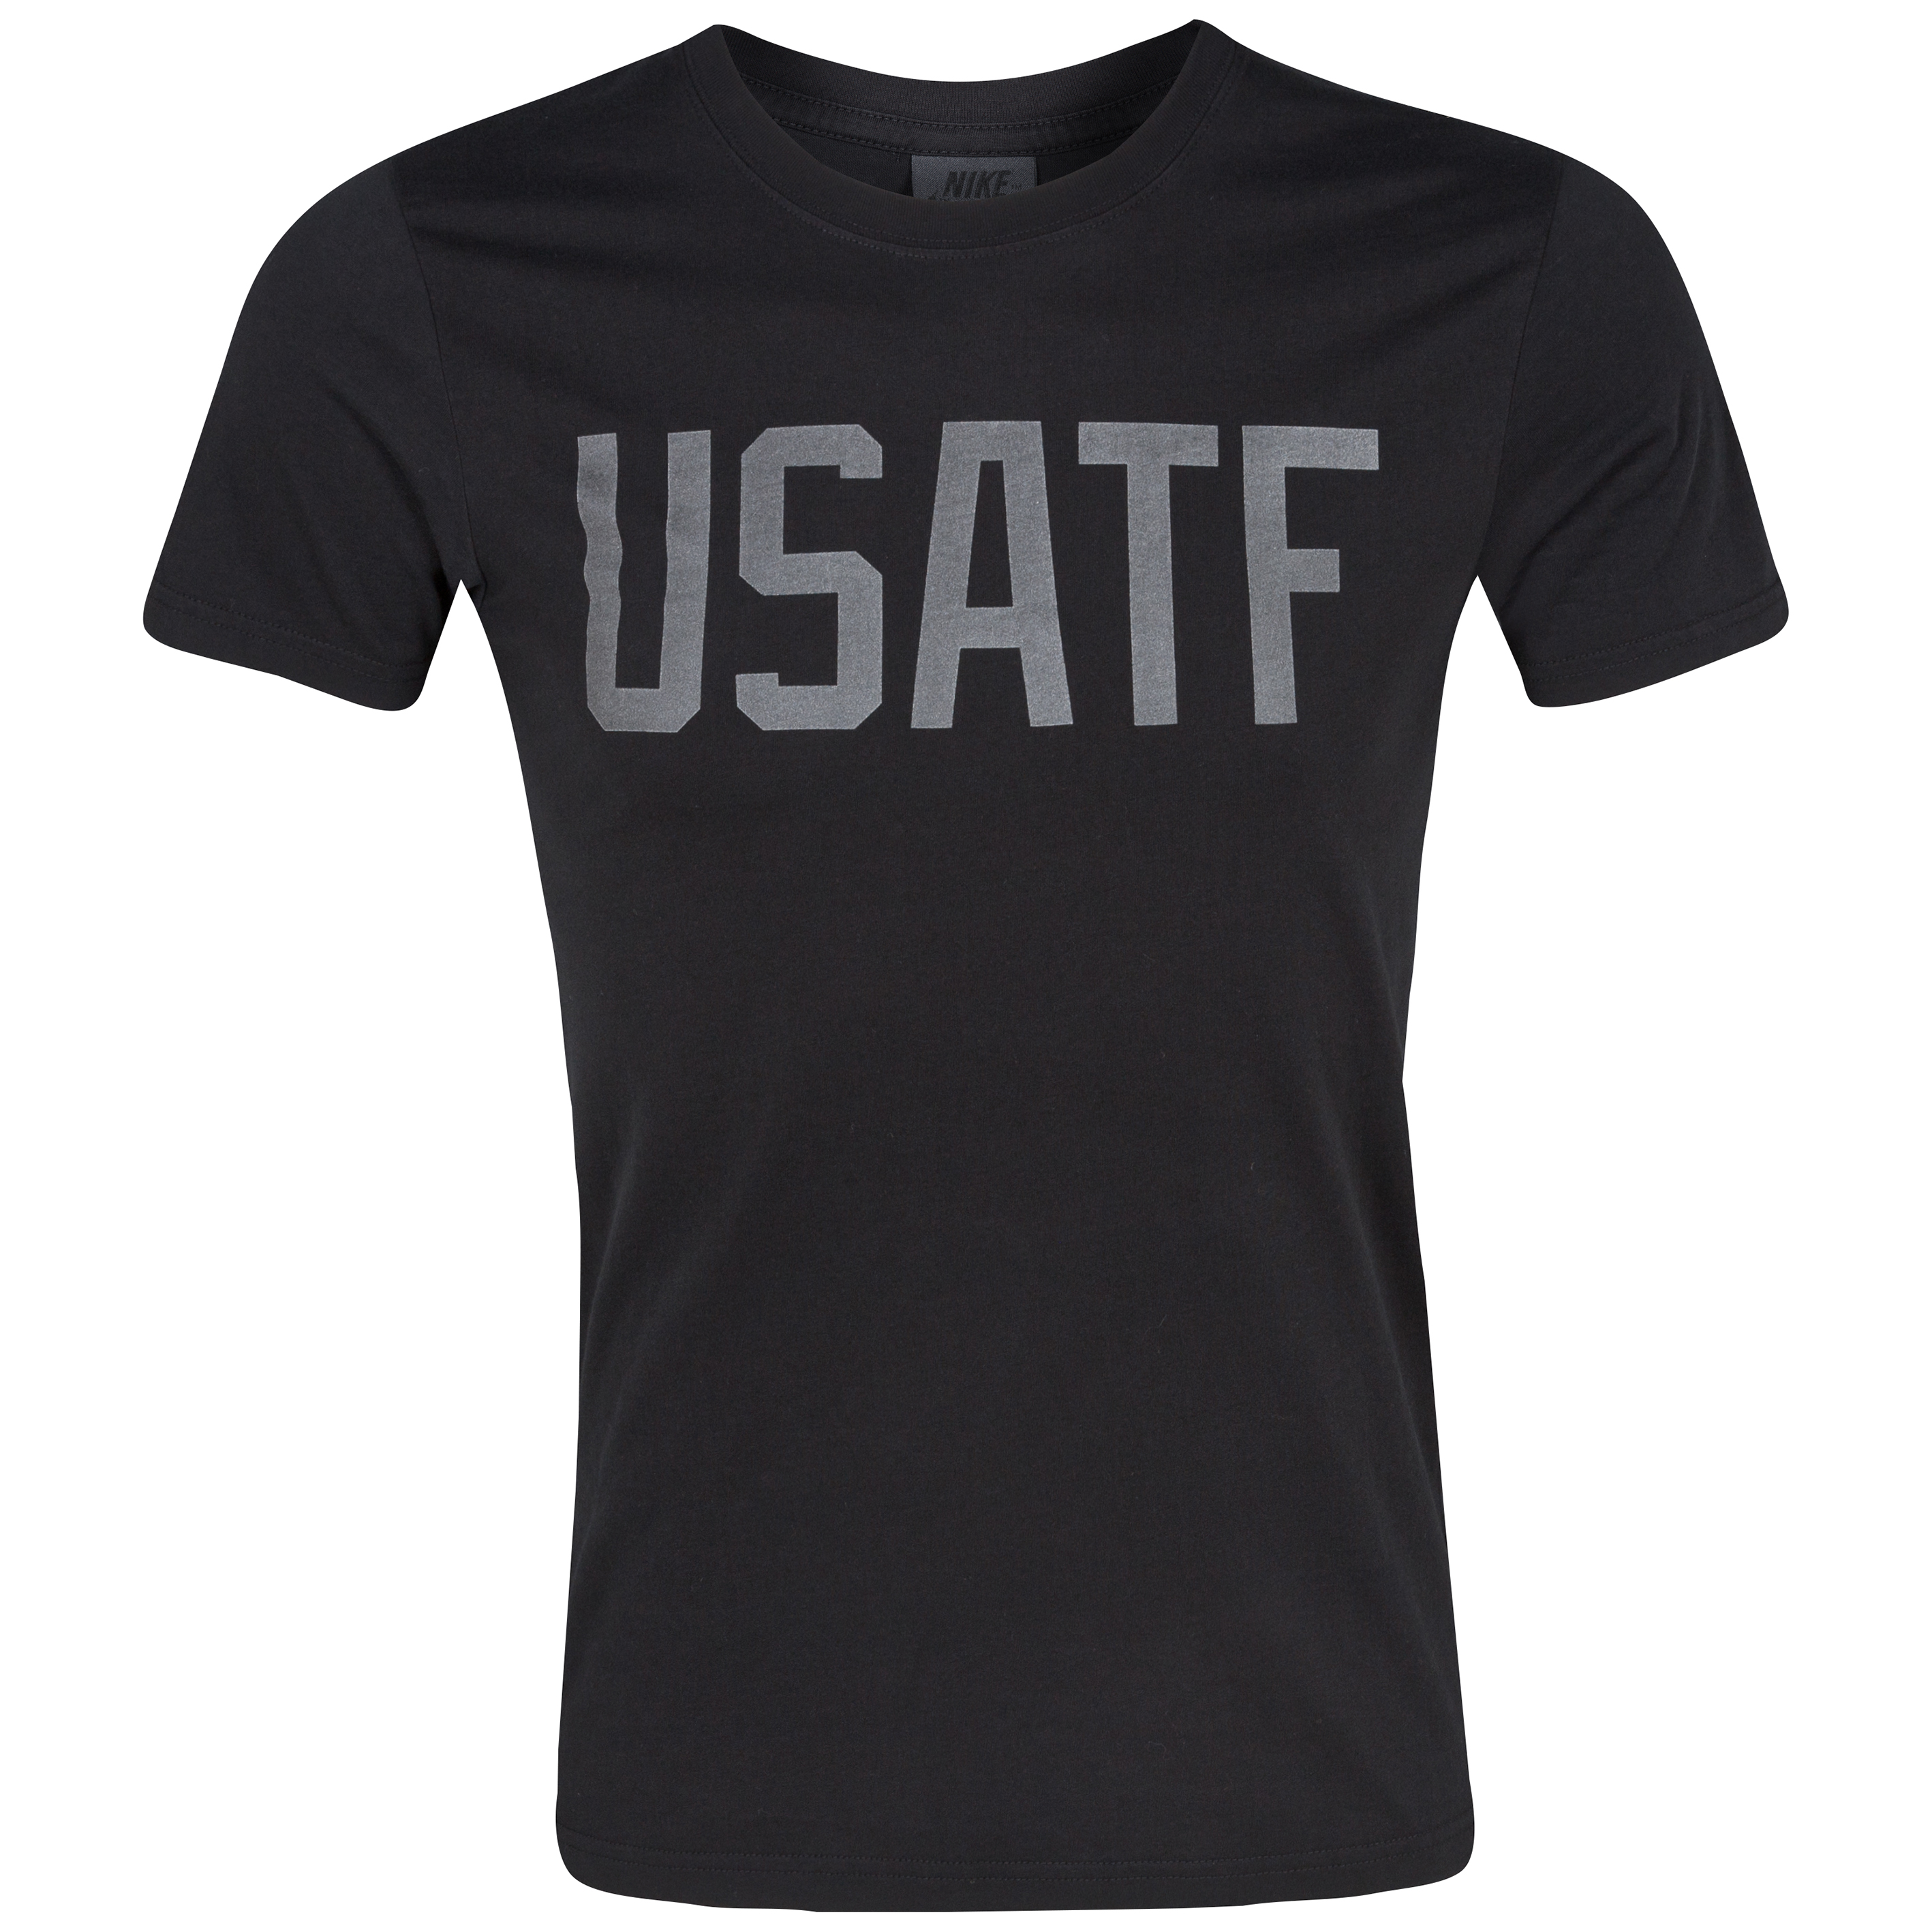 Nike Running USATF T-Shirt - Black